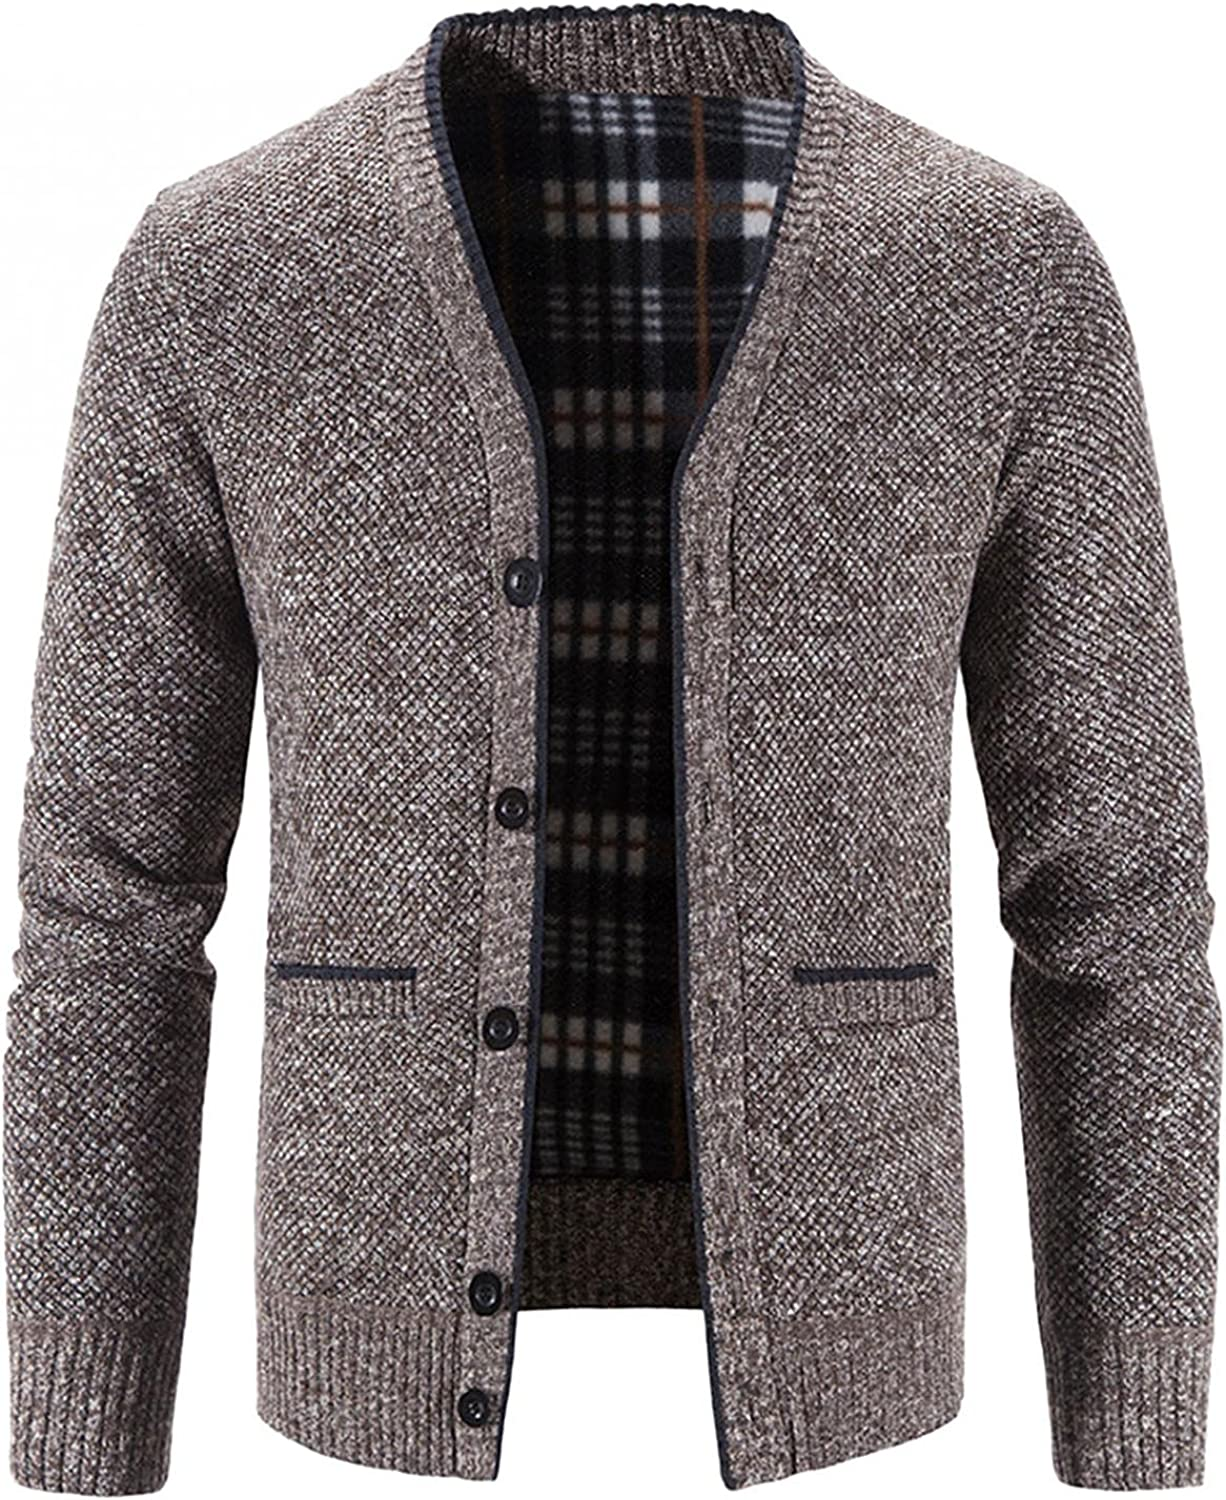 Aayomet Men's Fashion Cardigan Winter Warm Solid Button Long Sleeve V-Neck Casual Pullover Tops Blouses Coat with Pockets